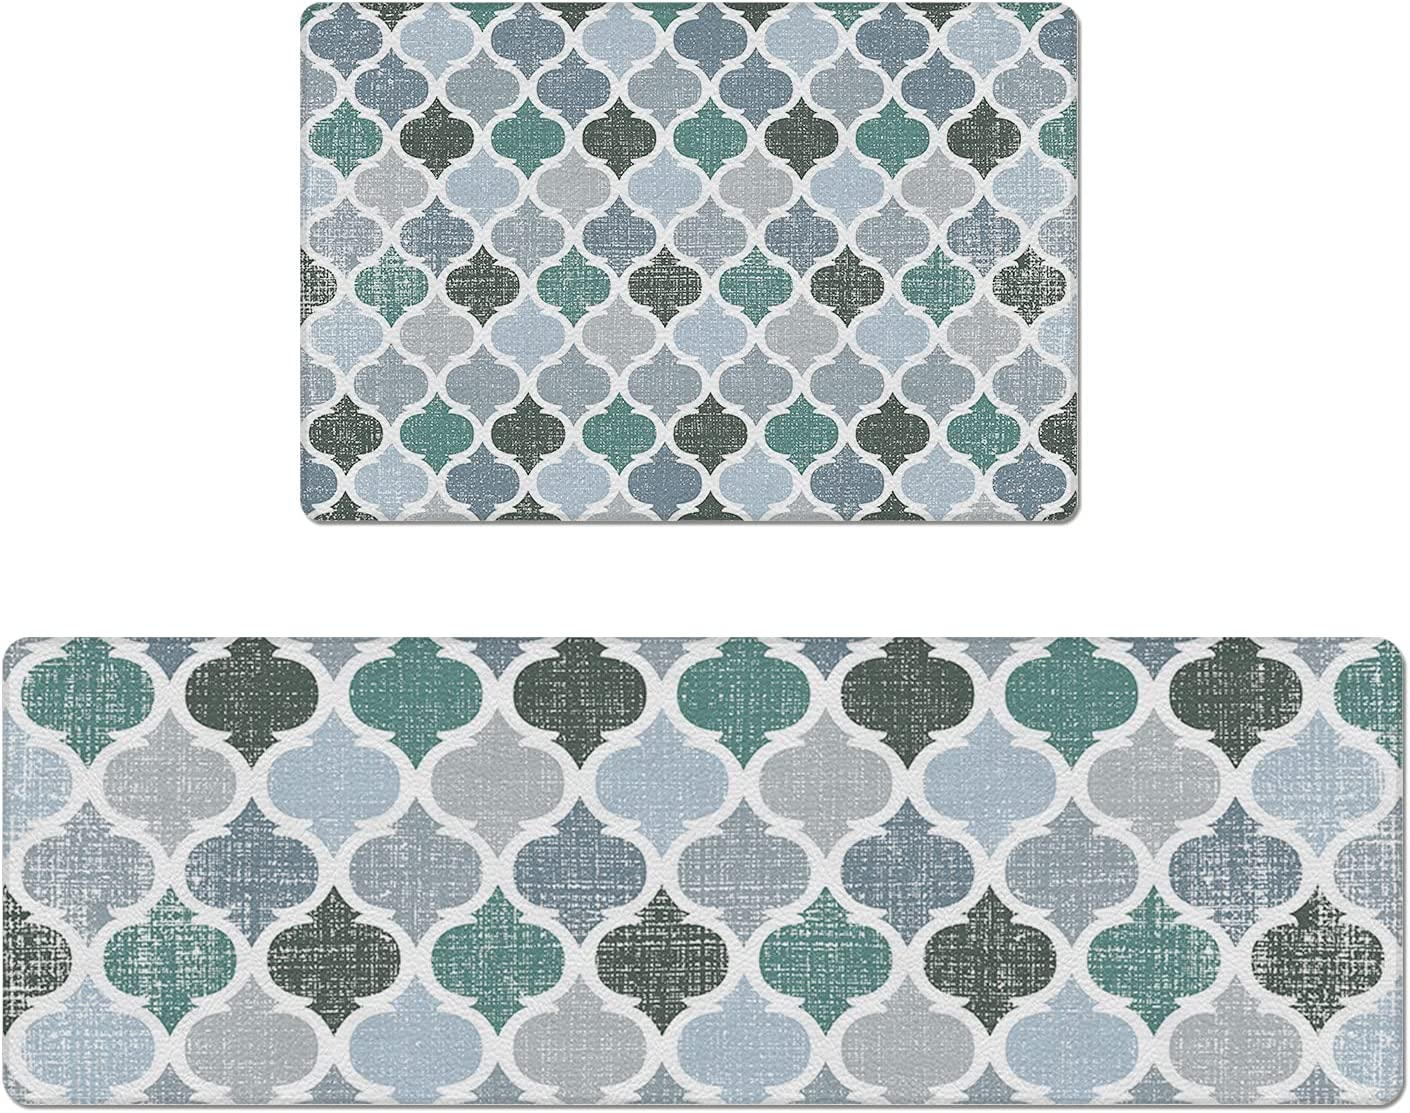 Set Los Angeles Mall of 2 Kitchen Rug PVC National uniform free shipping C and Leather Mats Non-Slip